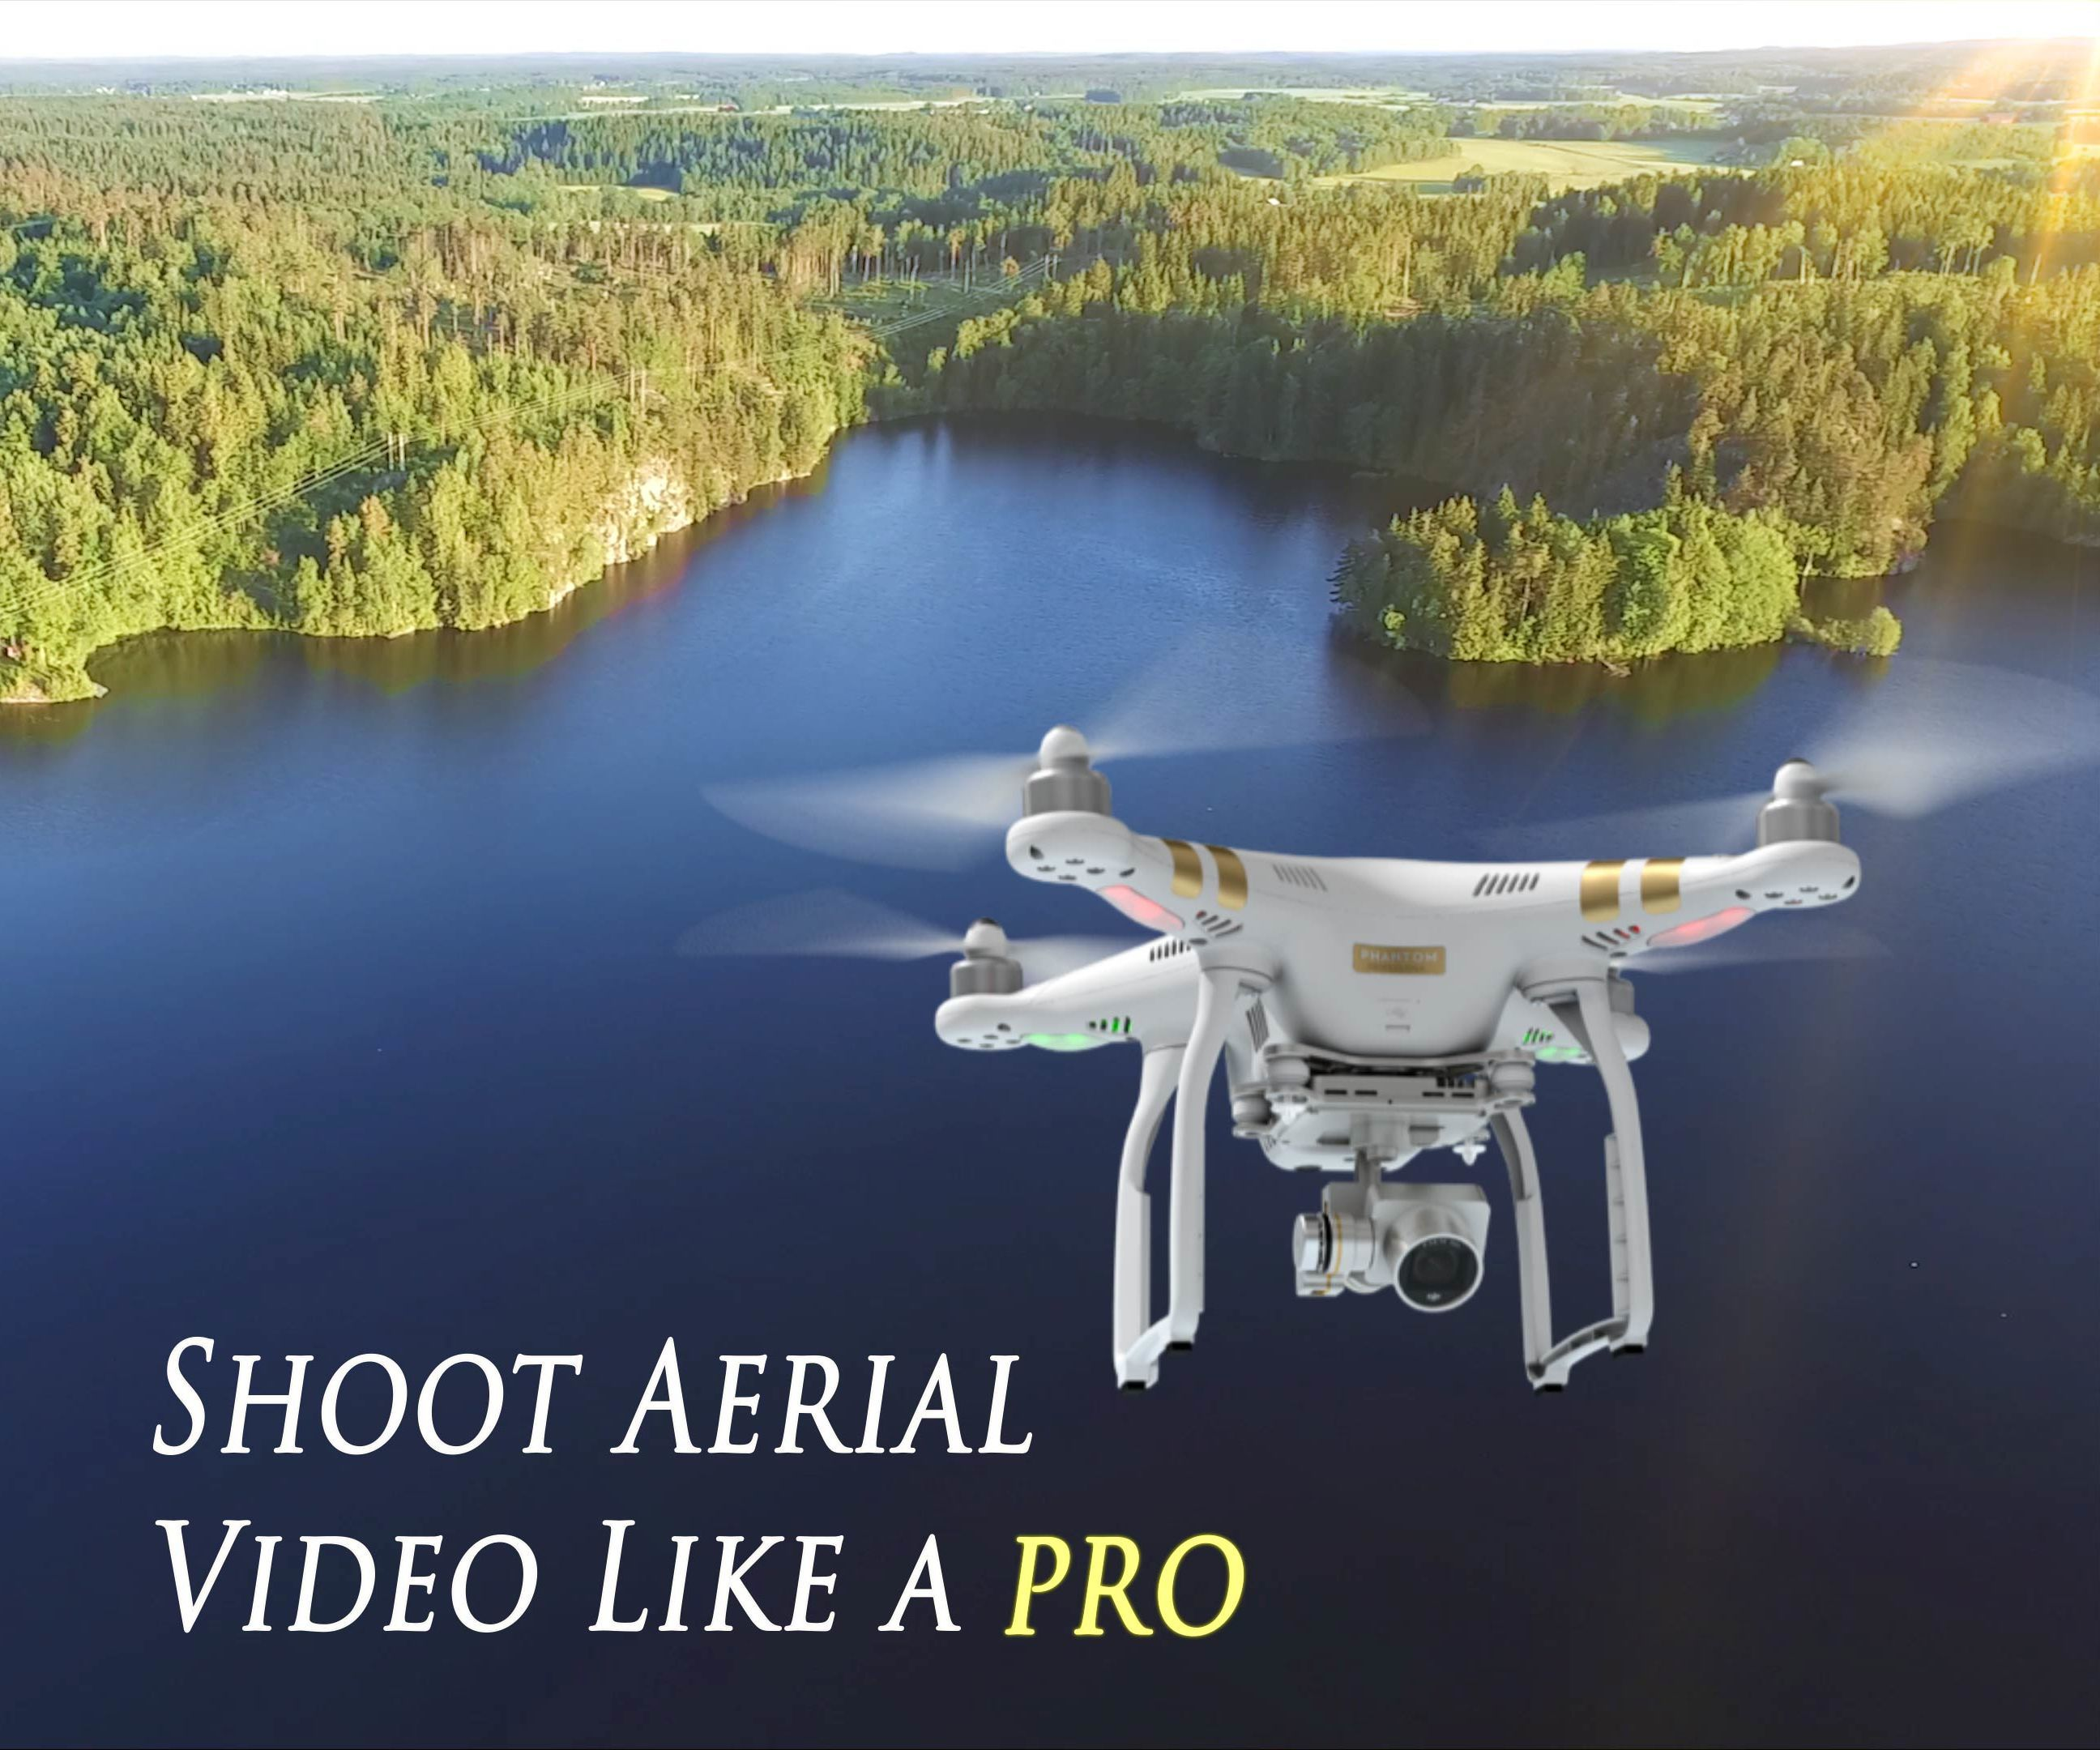 Shoot Aerial Video Like a Pro - Drone Guide